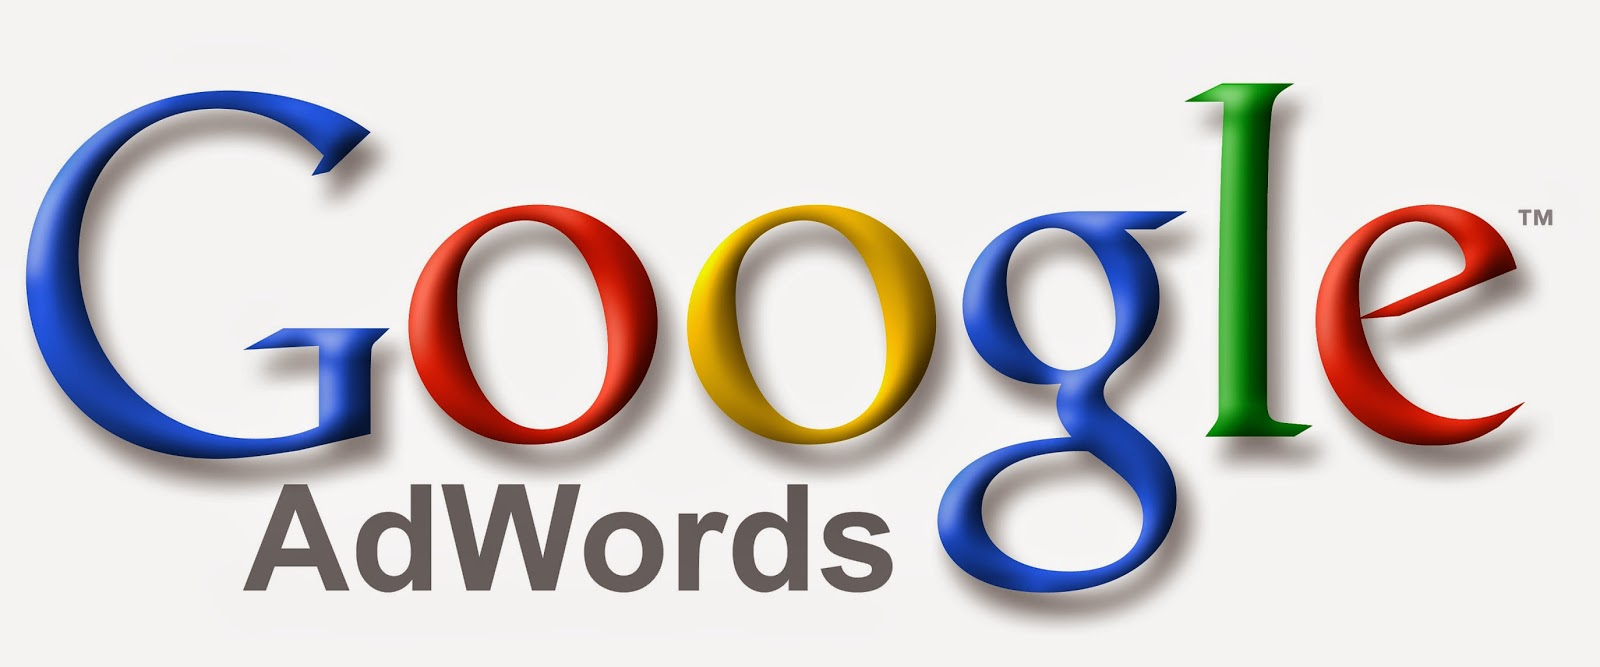 Ways to Improve the Performance of an AdWords Campaign